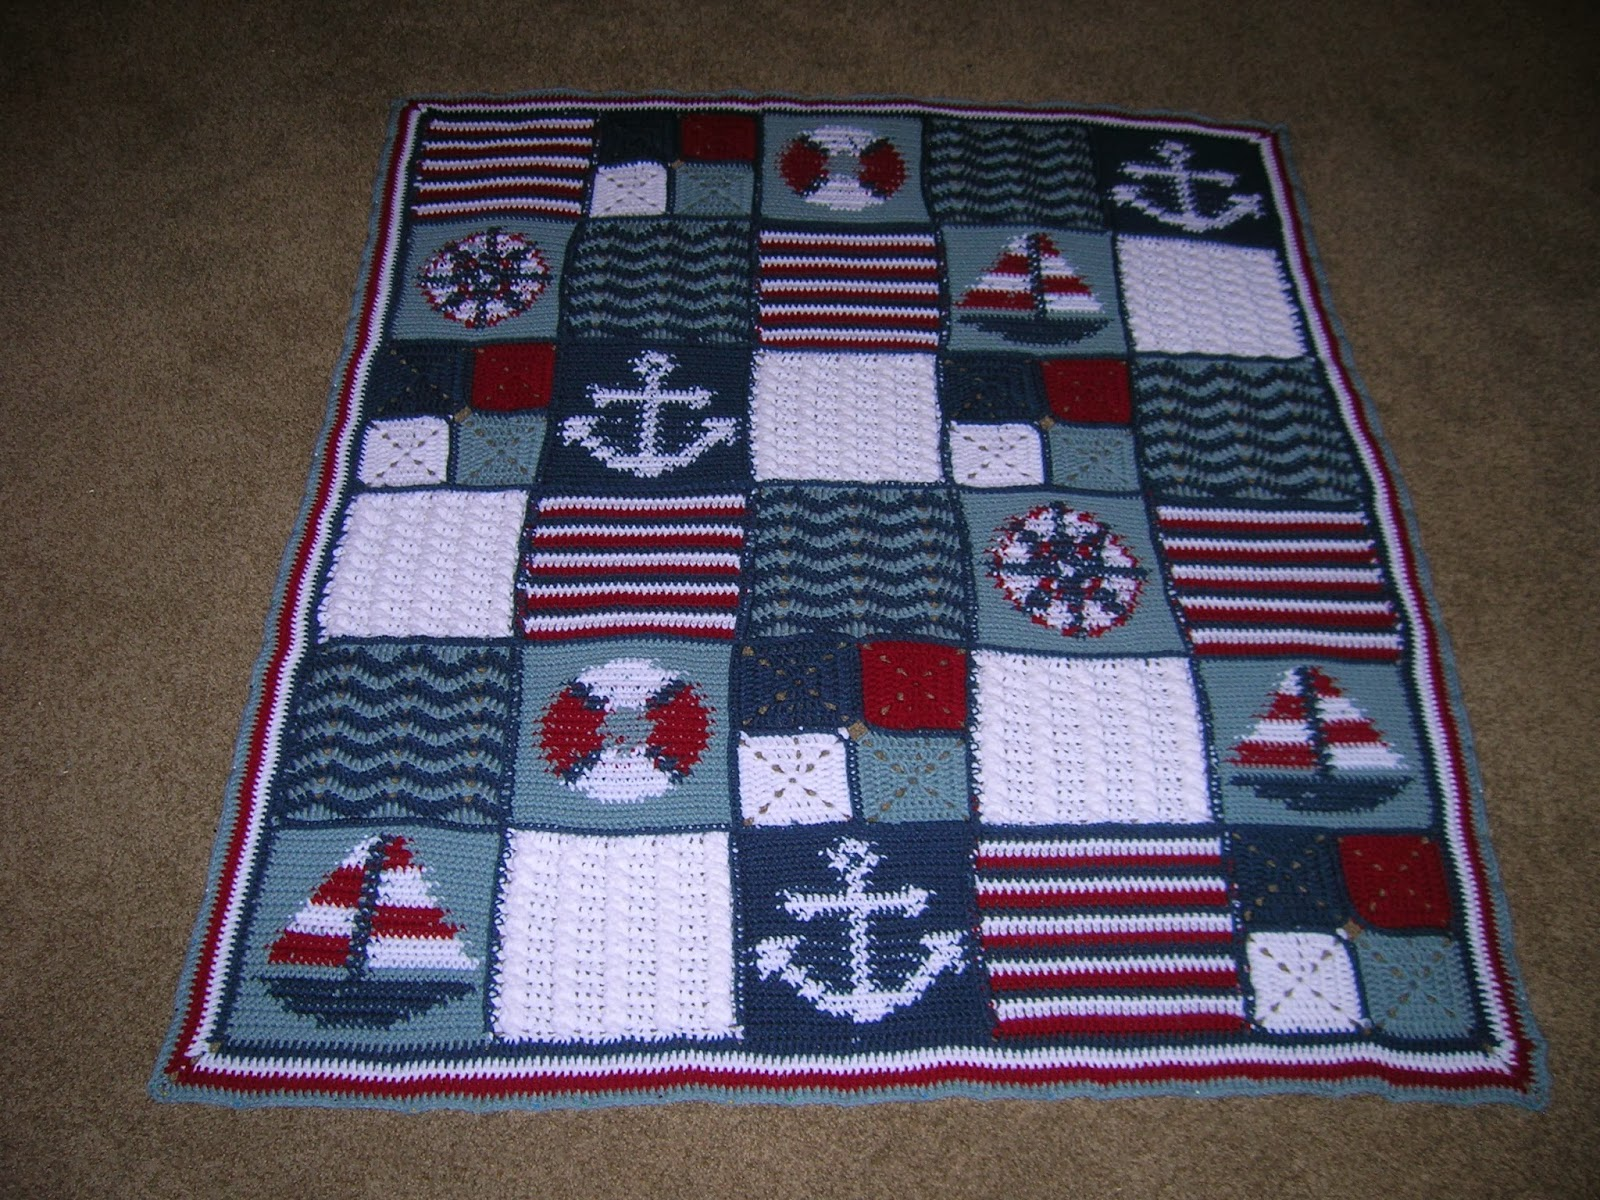 Crochet Patterns Nautical : Nautical Crochet - free patterns - Grandmothers Pattern Book